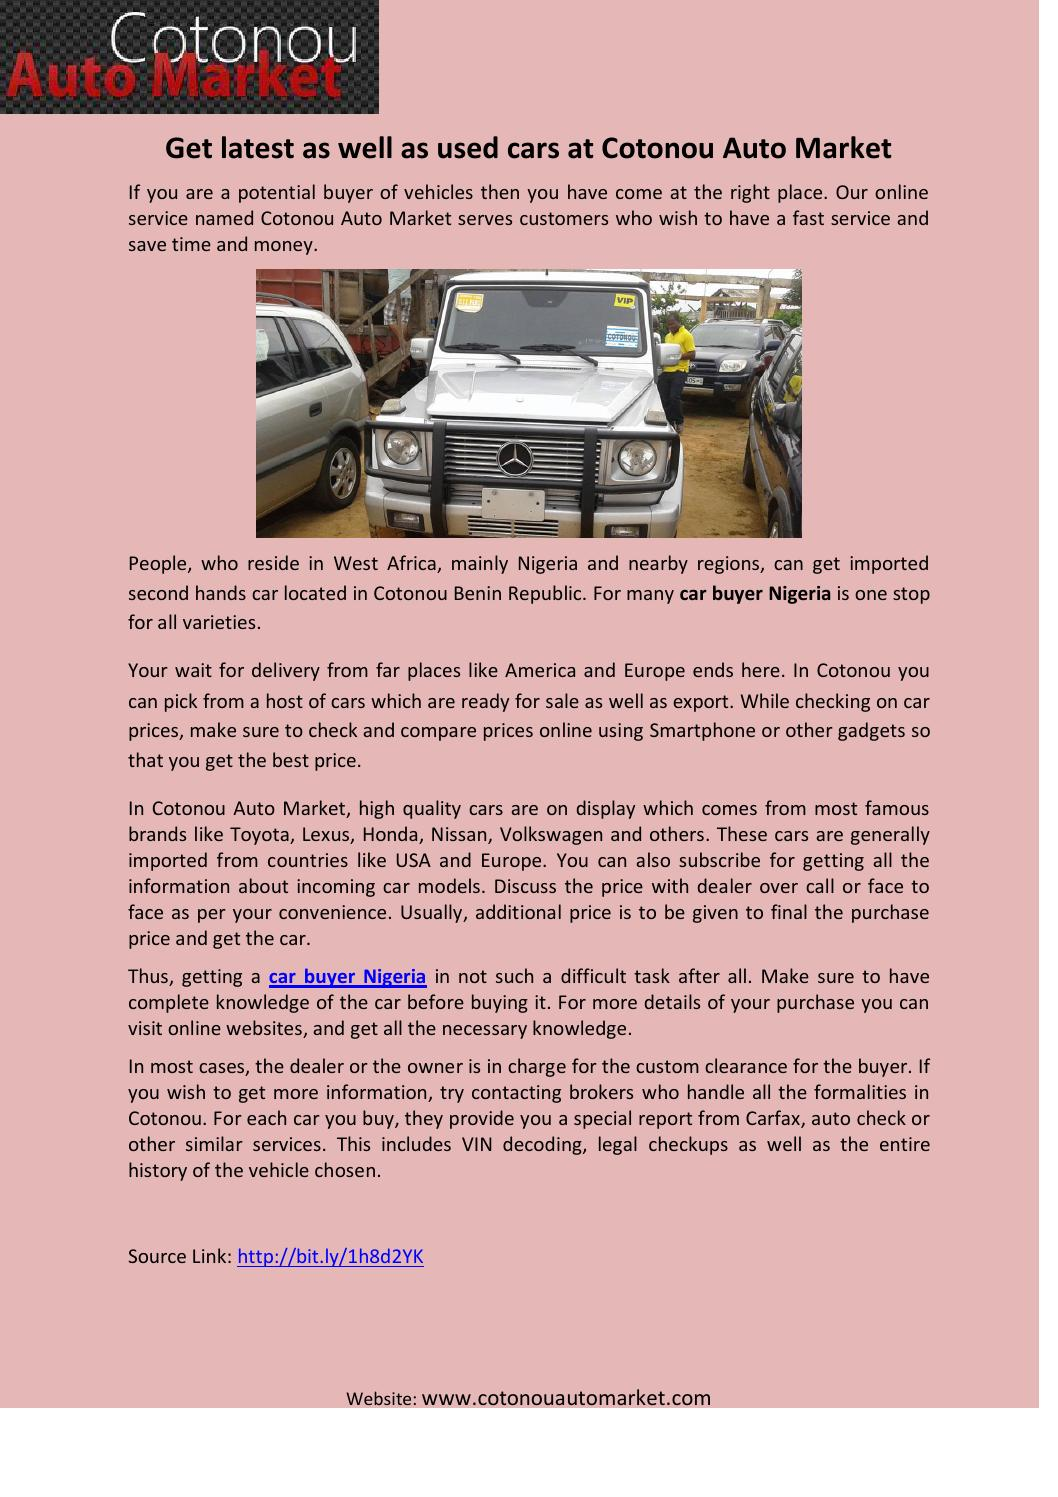 Get latest as well as used cars at Cotonou Auto Market by Alison ...